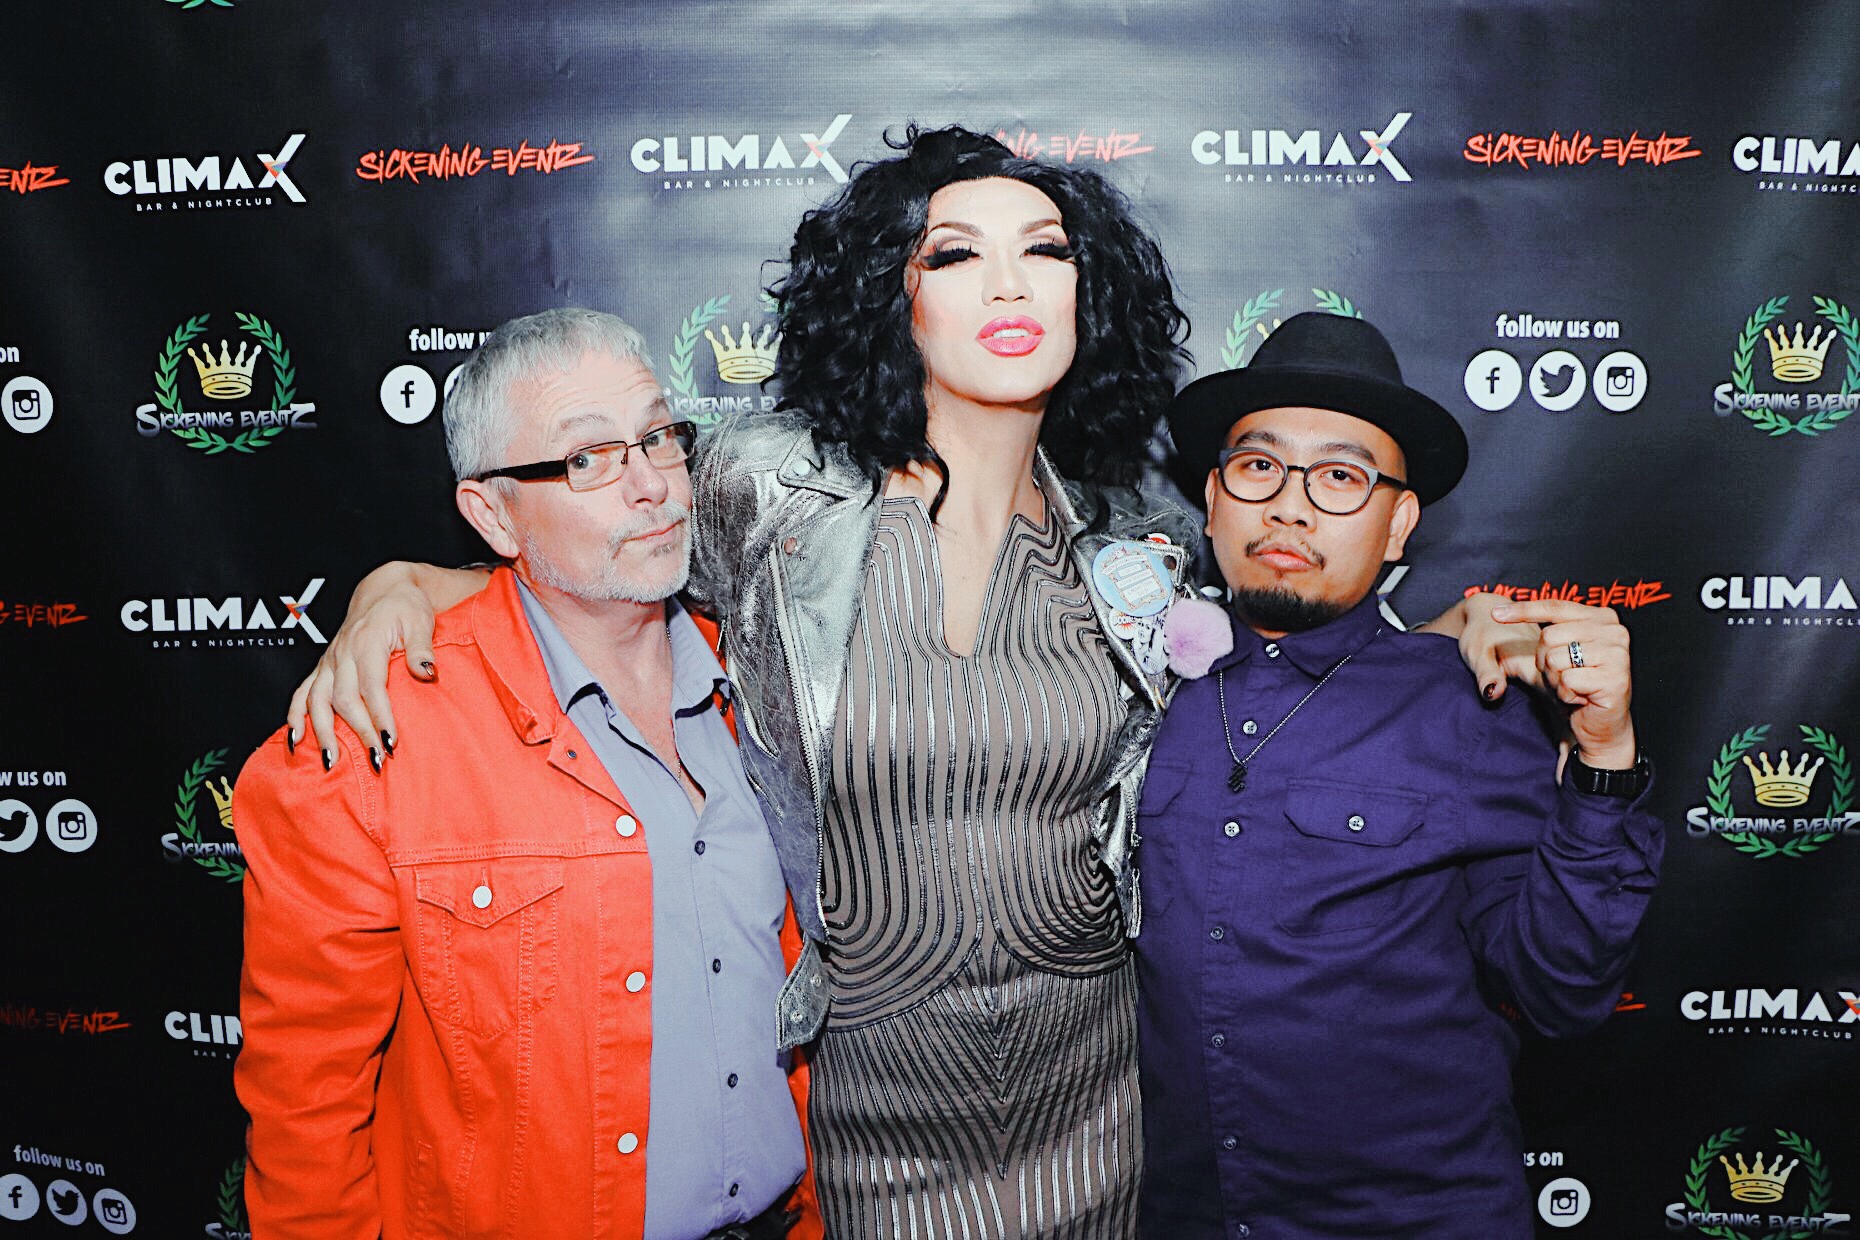 Manila Luzon with G&D